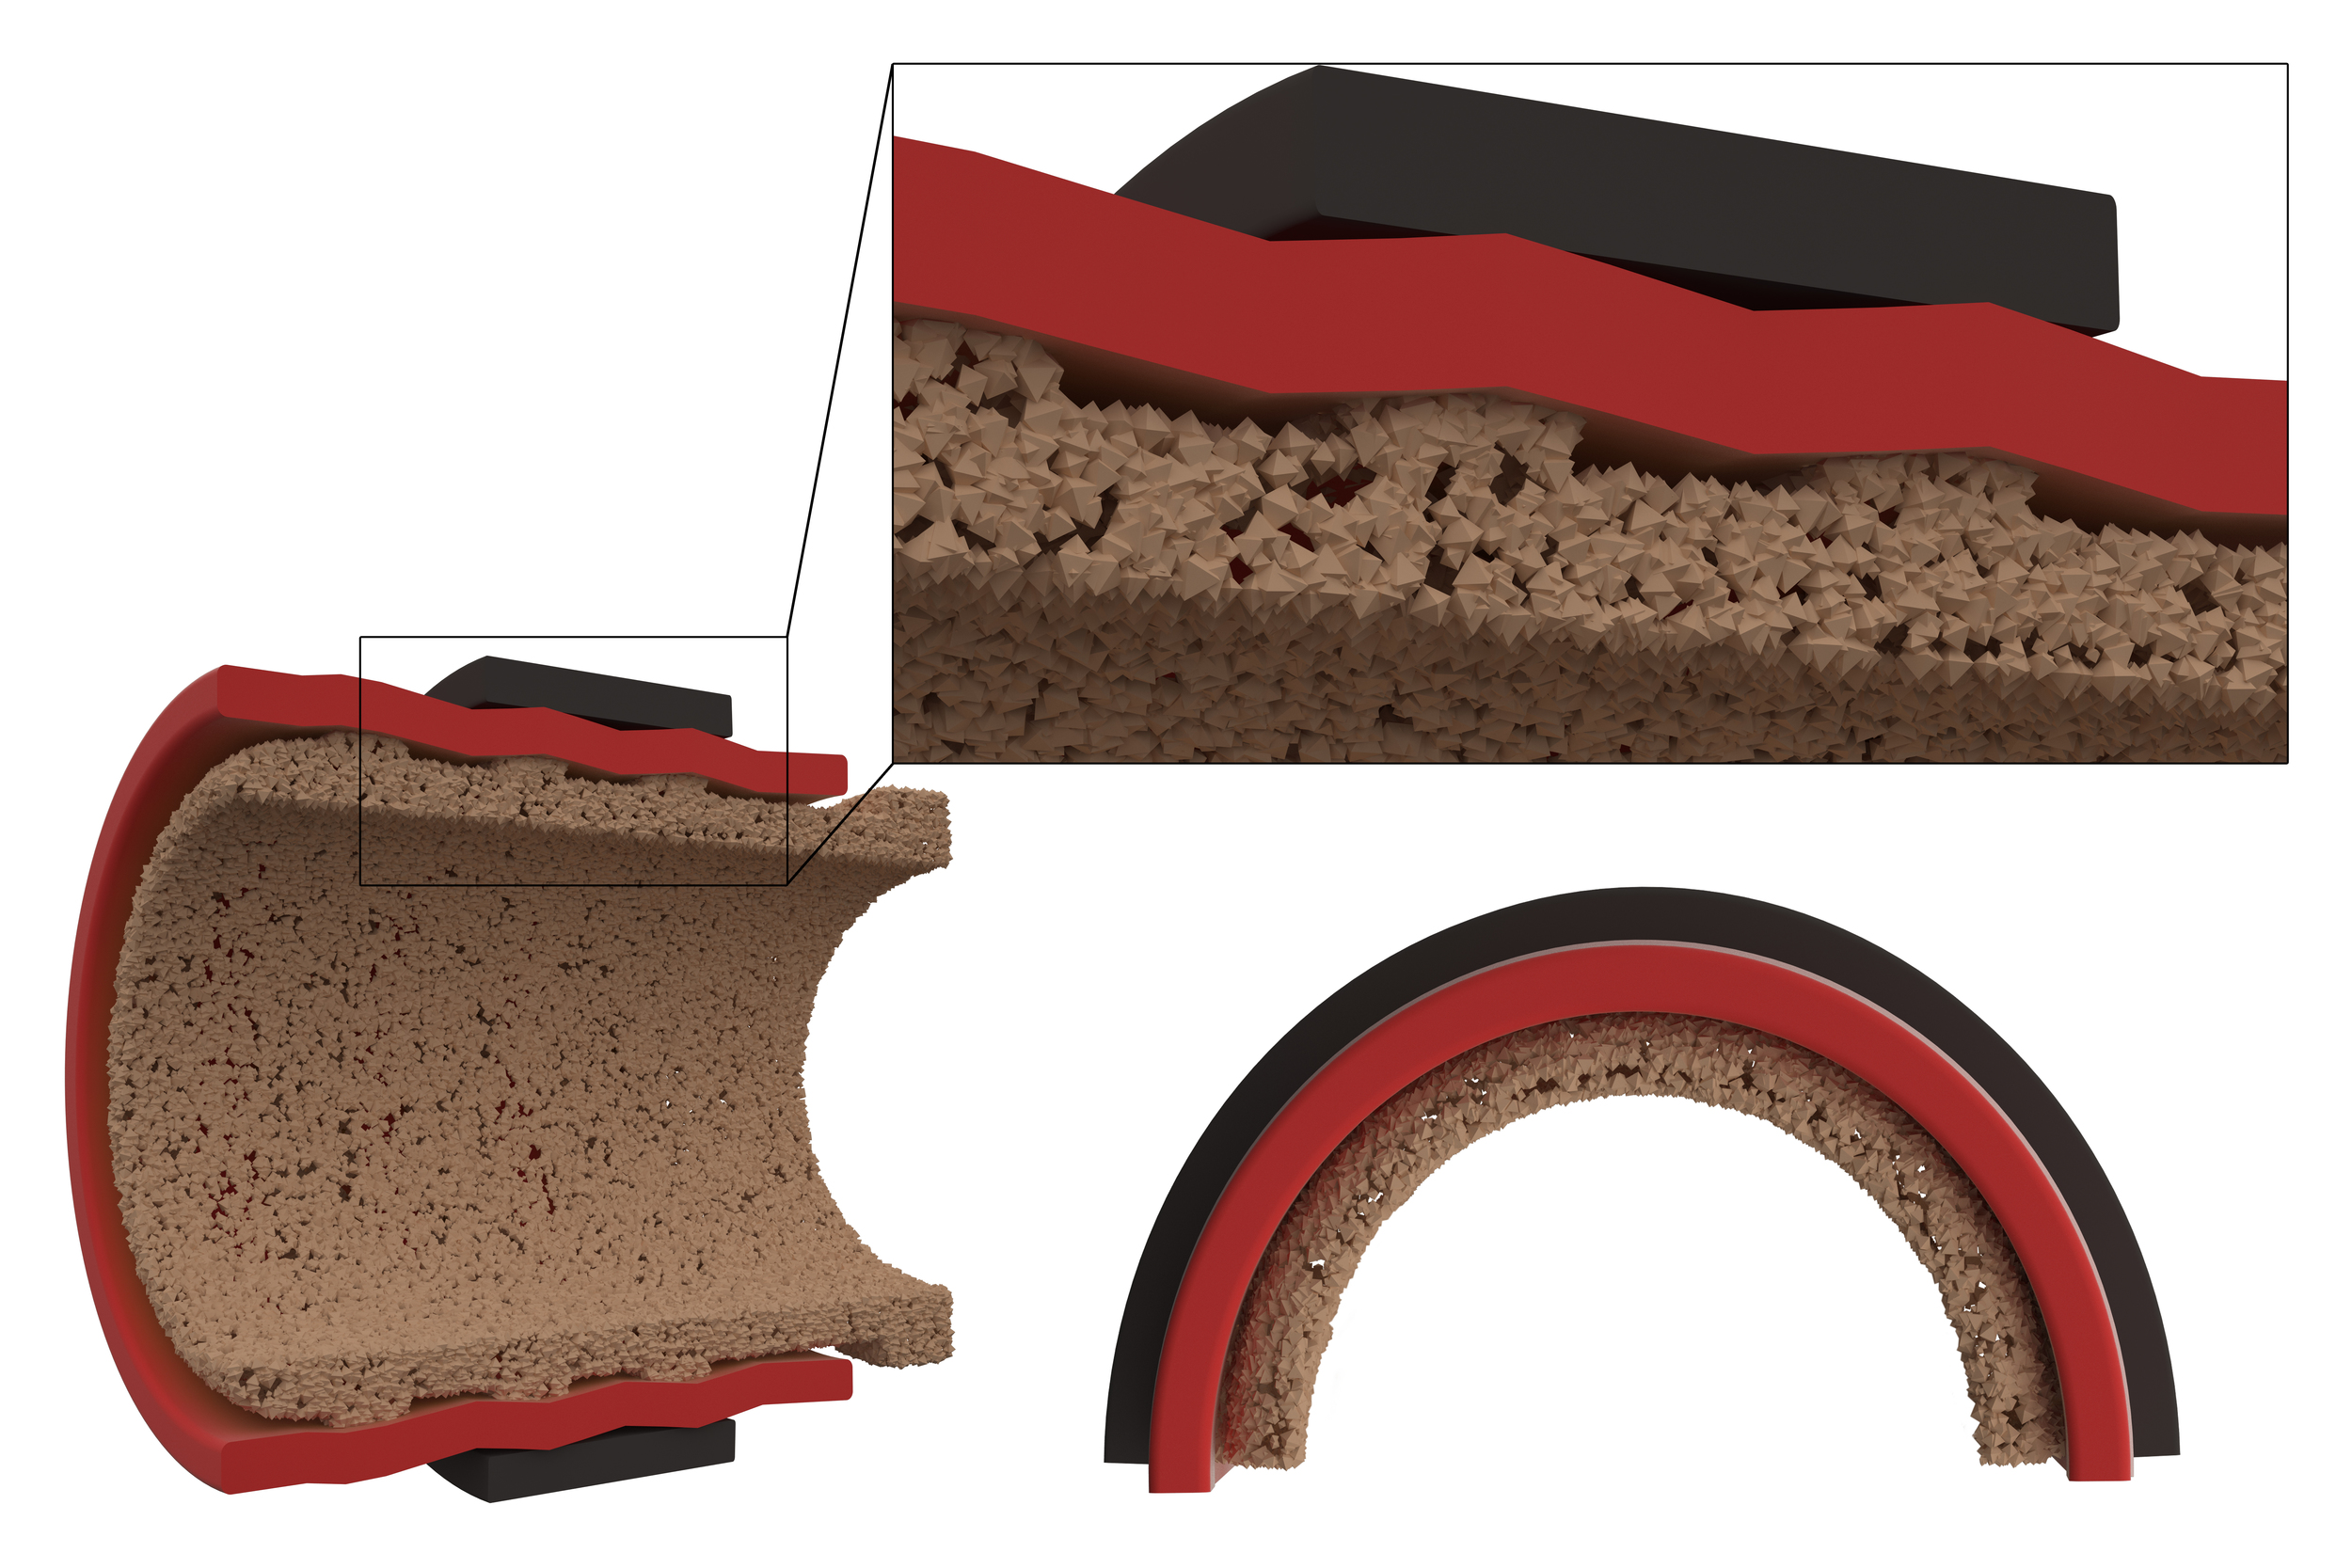 Trial graphic created to articulate pipe erosion due to chemical abrasion.